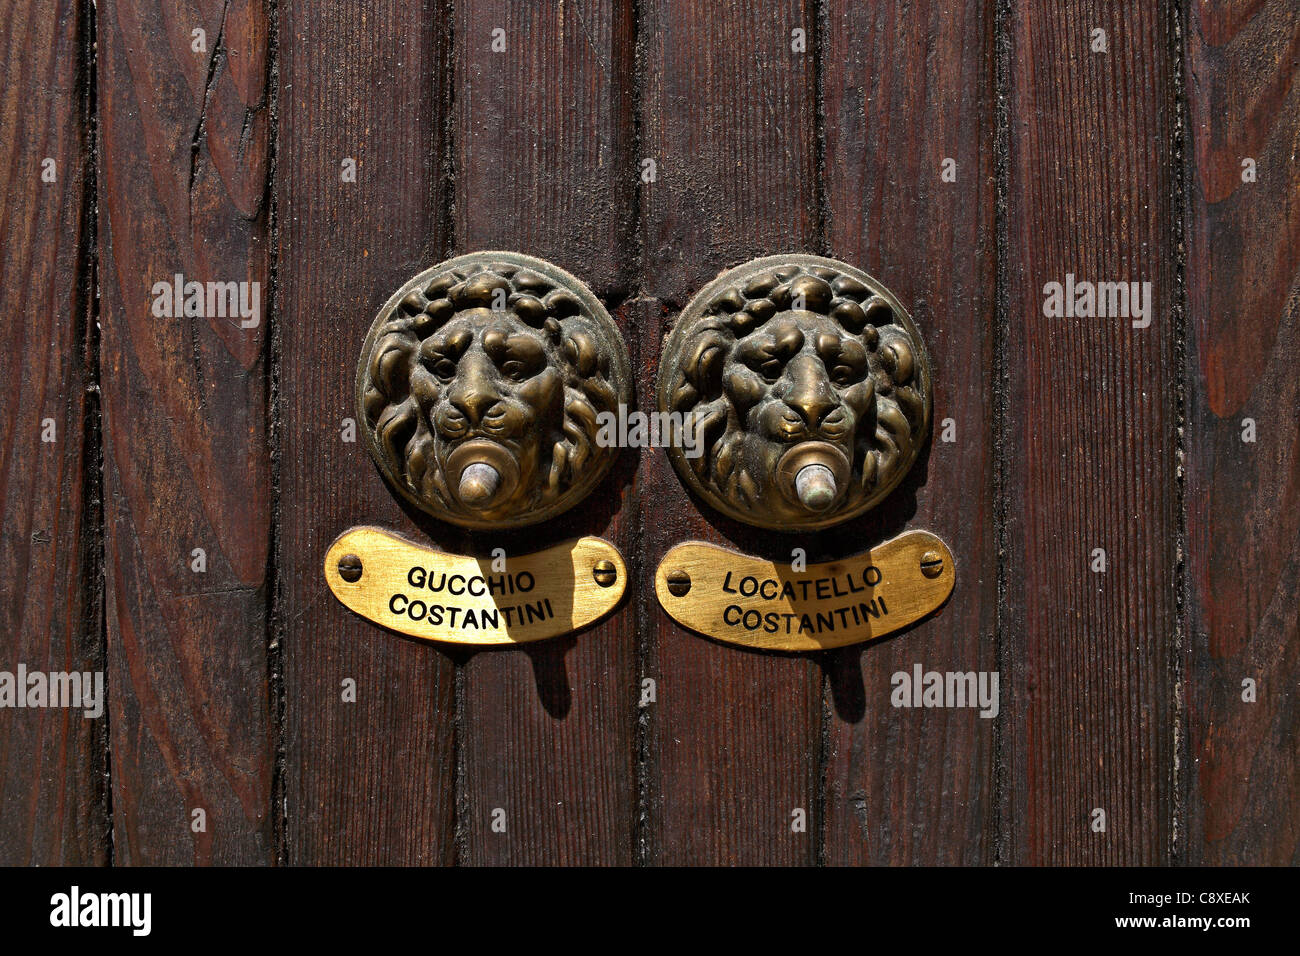 Brass Lion Head Door Bells On Wooden Doors With Name Plates